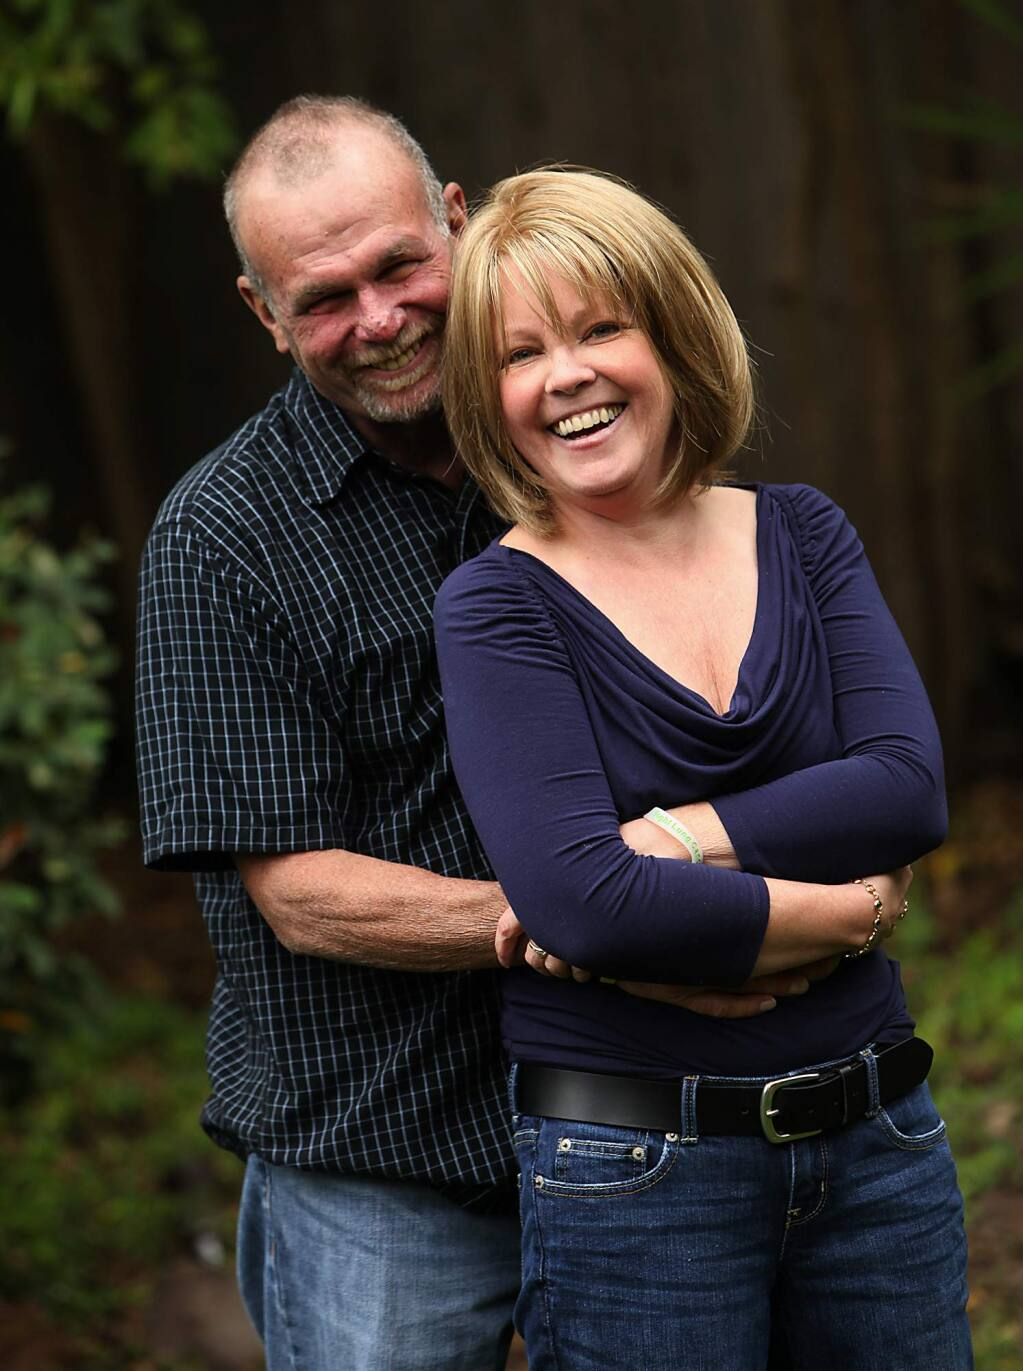 Don Stranathan met Penny Blume in a lung cancer support community. Since her passing in January 2014, Stranathan had become an advocate for lung cancer research. JOHN BURGESS the press democrat, 2012